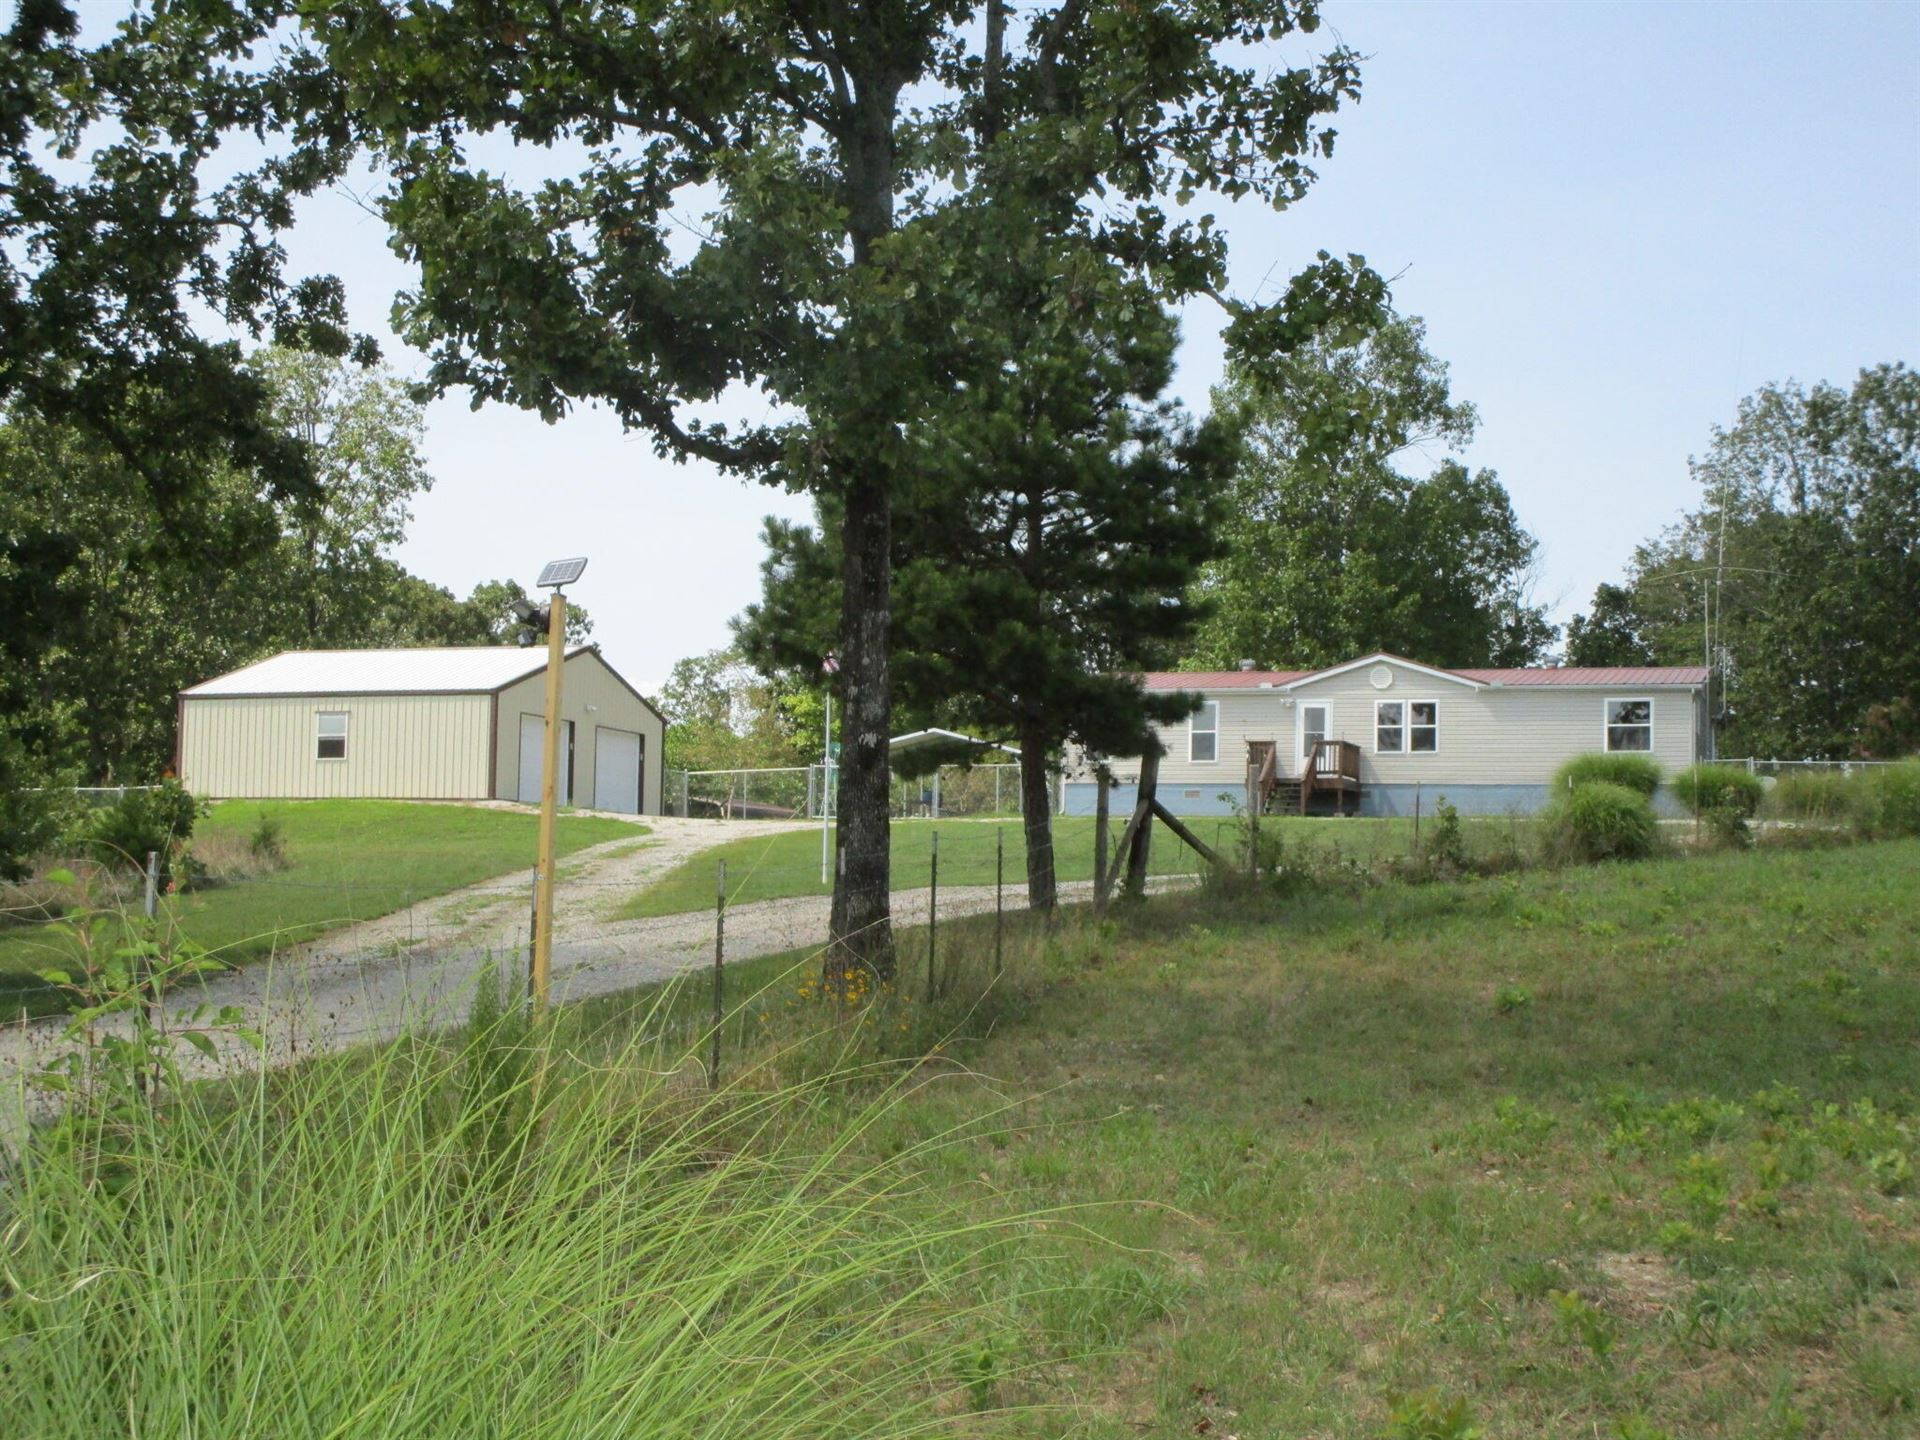 Photo of 9821 State Route Tt, Mountain View, MO 65548 (MLS # 60197635)